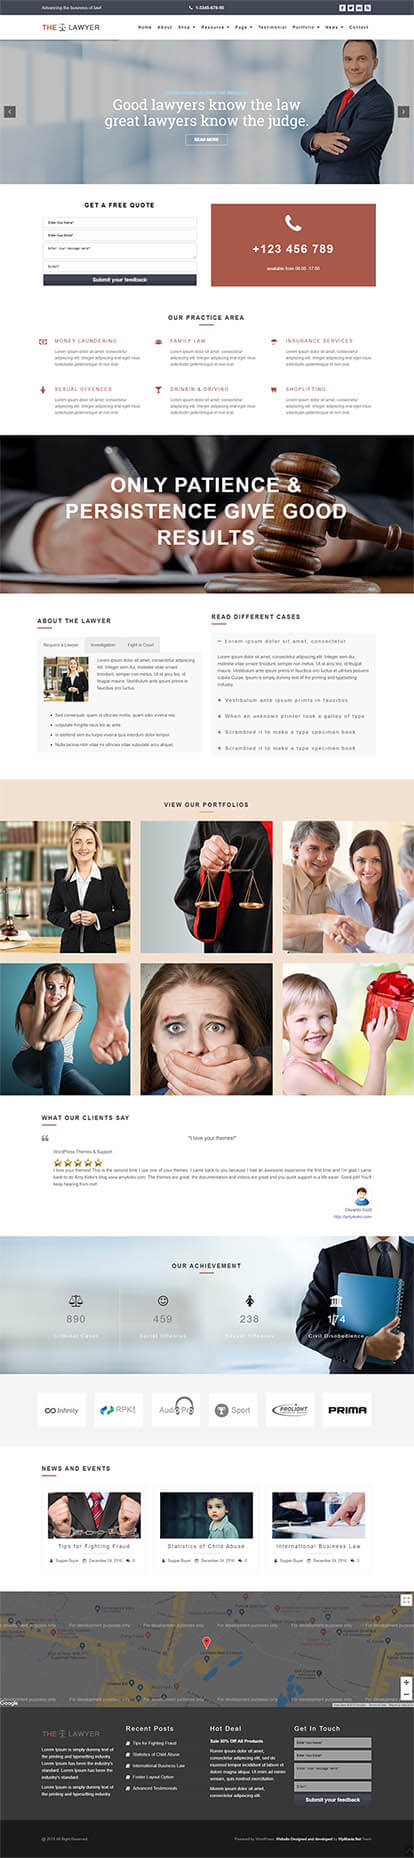 The Lawyer WORDPRESS THEME Full Demo